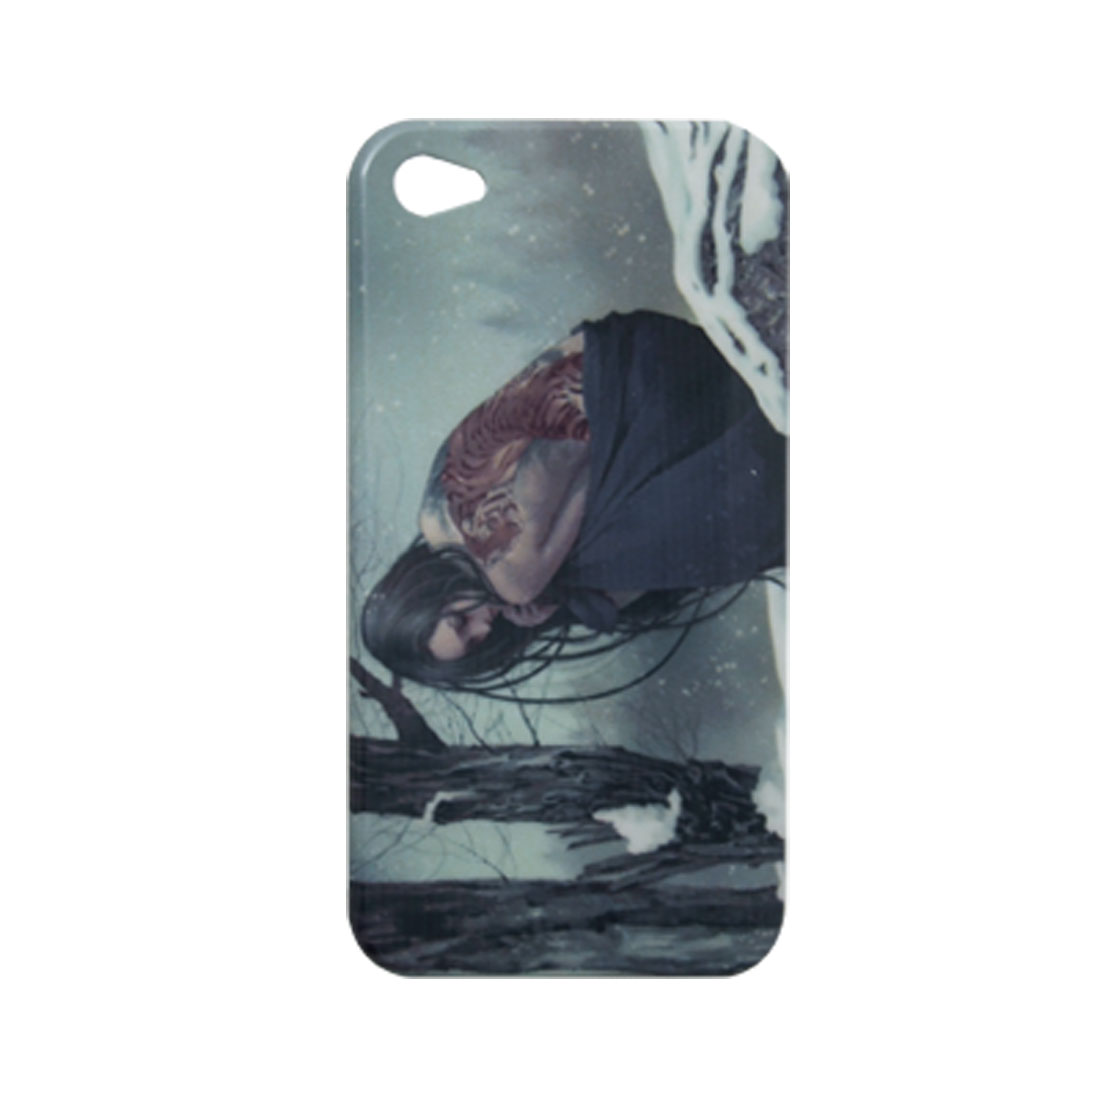 Tiger Print Tattoo Girl IMD Hard Plastic Back Cover for iPhone 4 4G